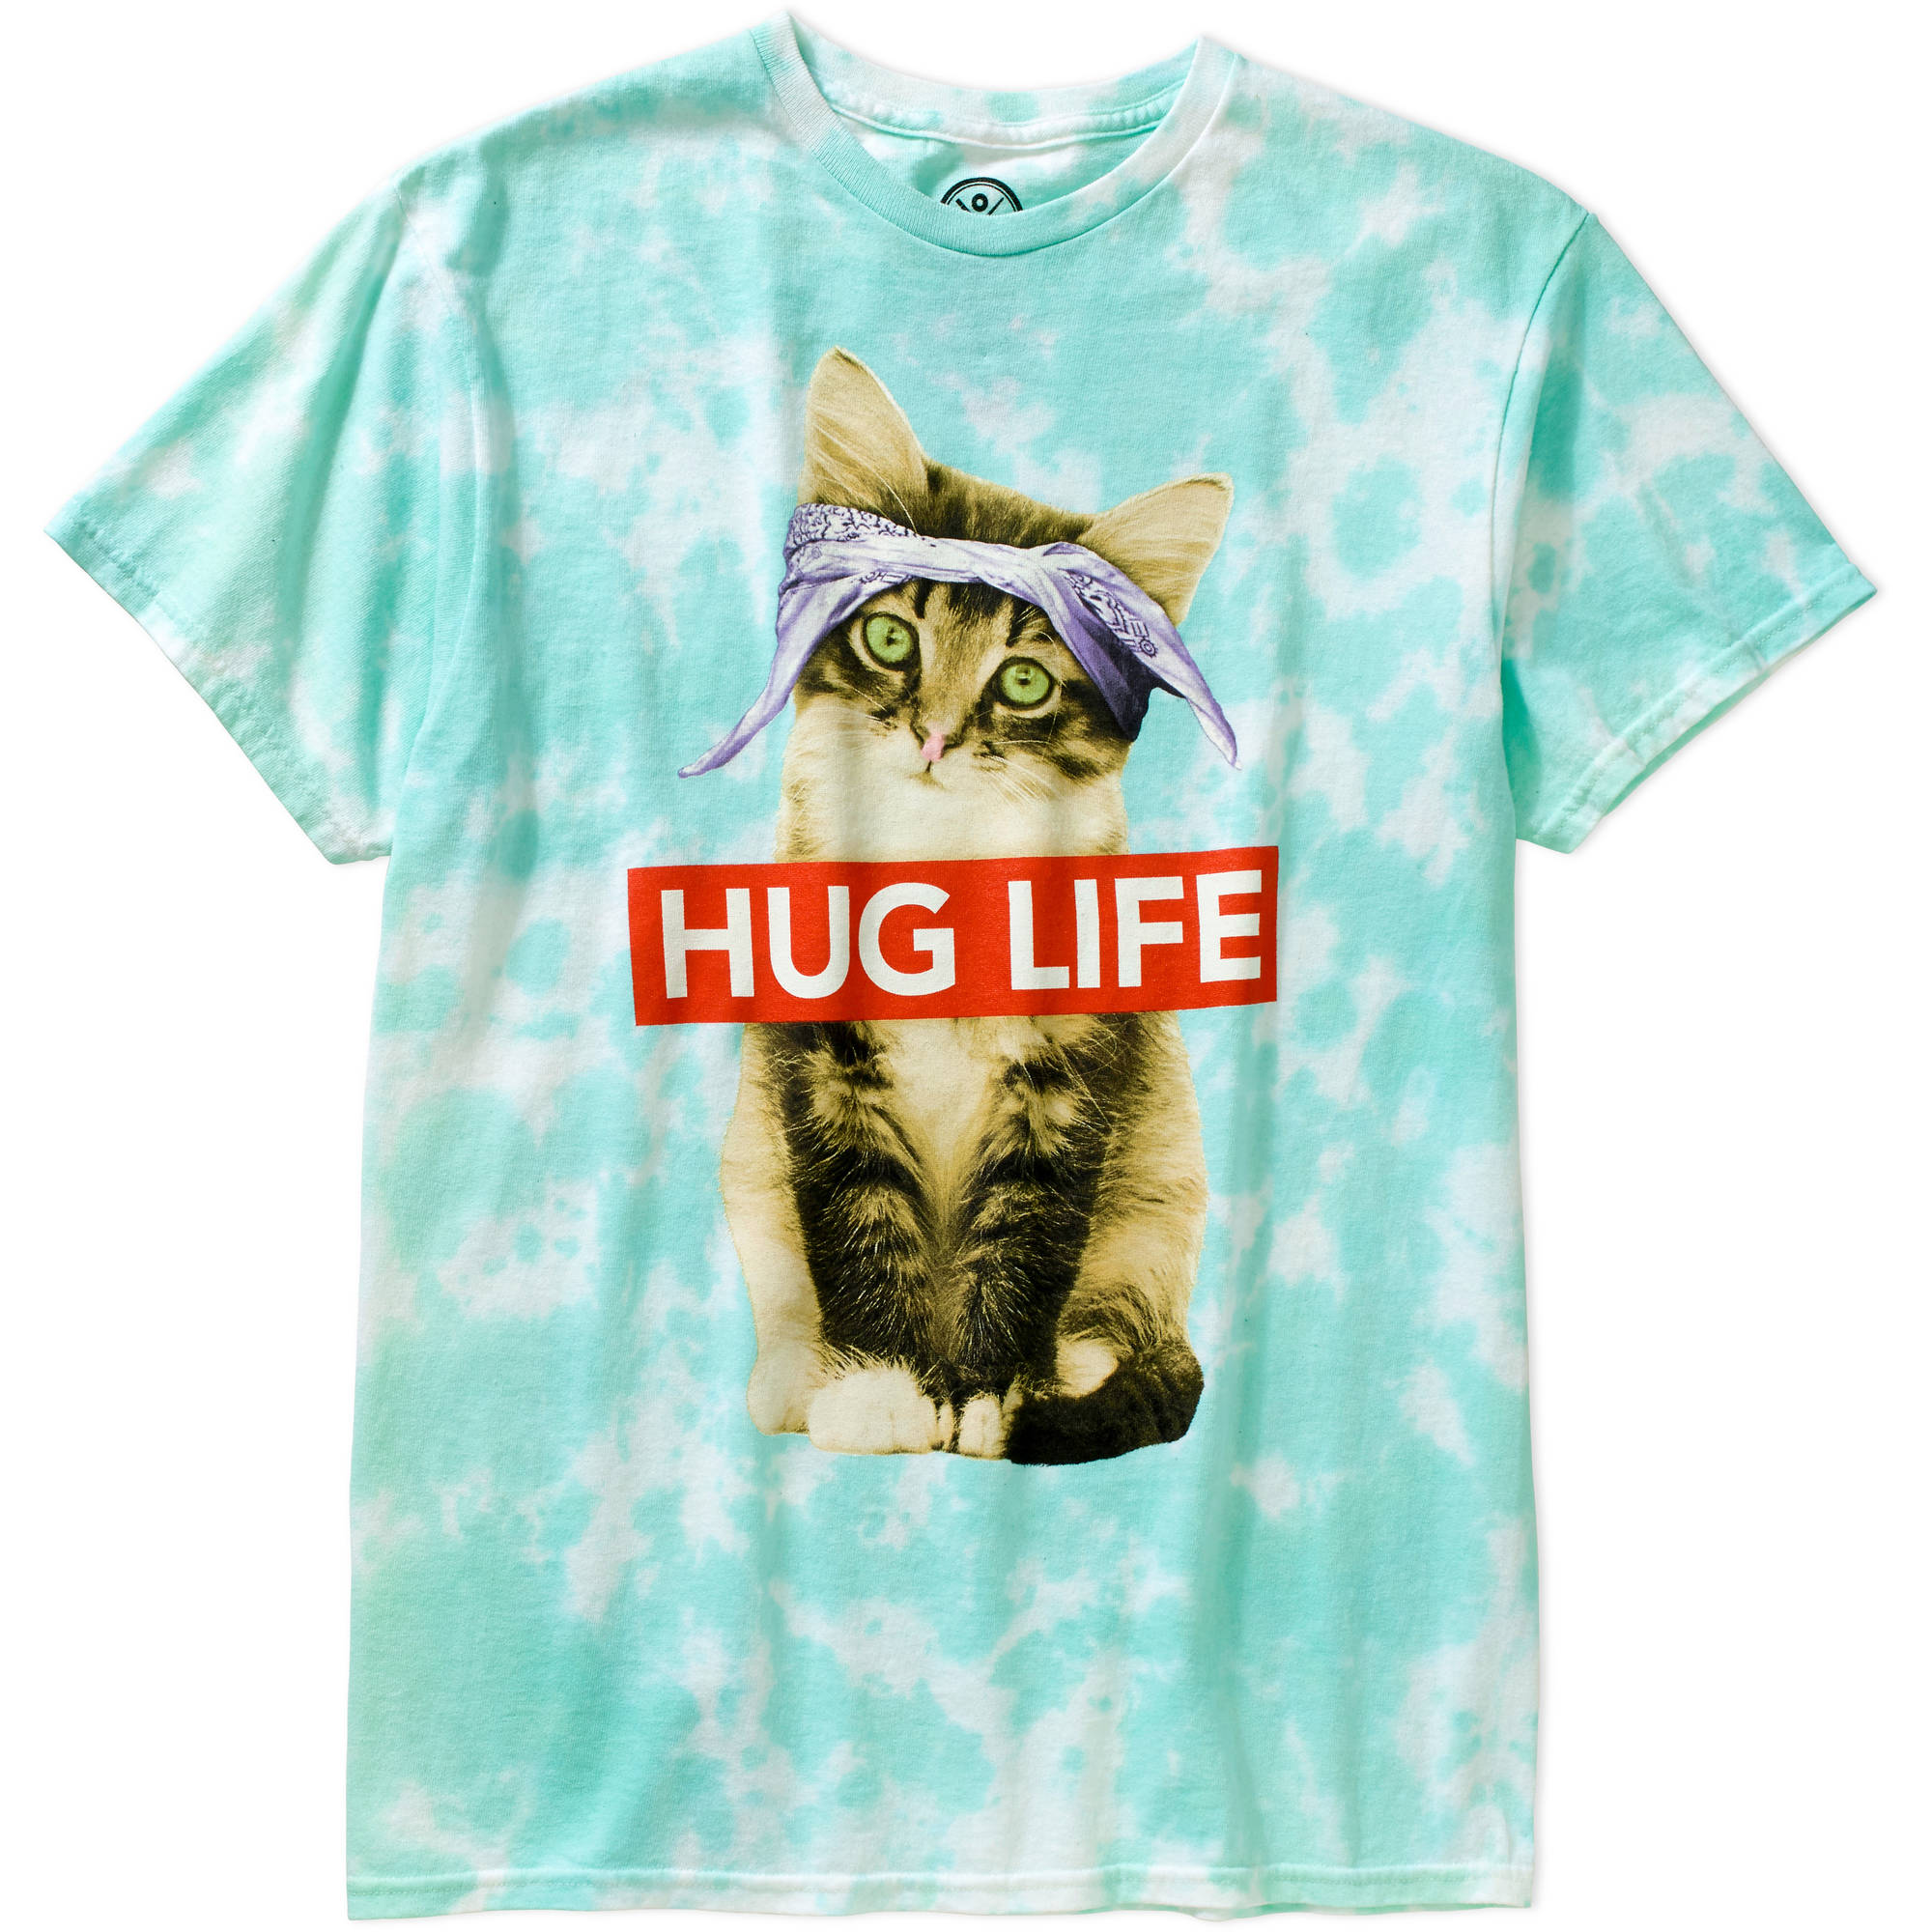 Hug Life Cat Men\'s Graphic Tee - Walmart.com